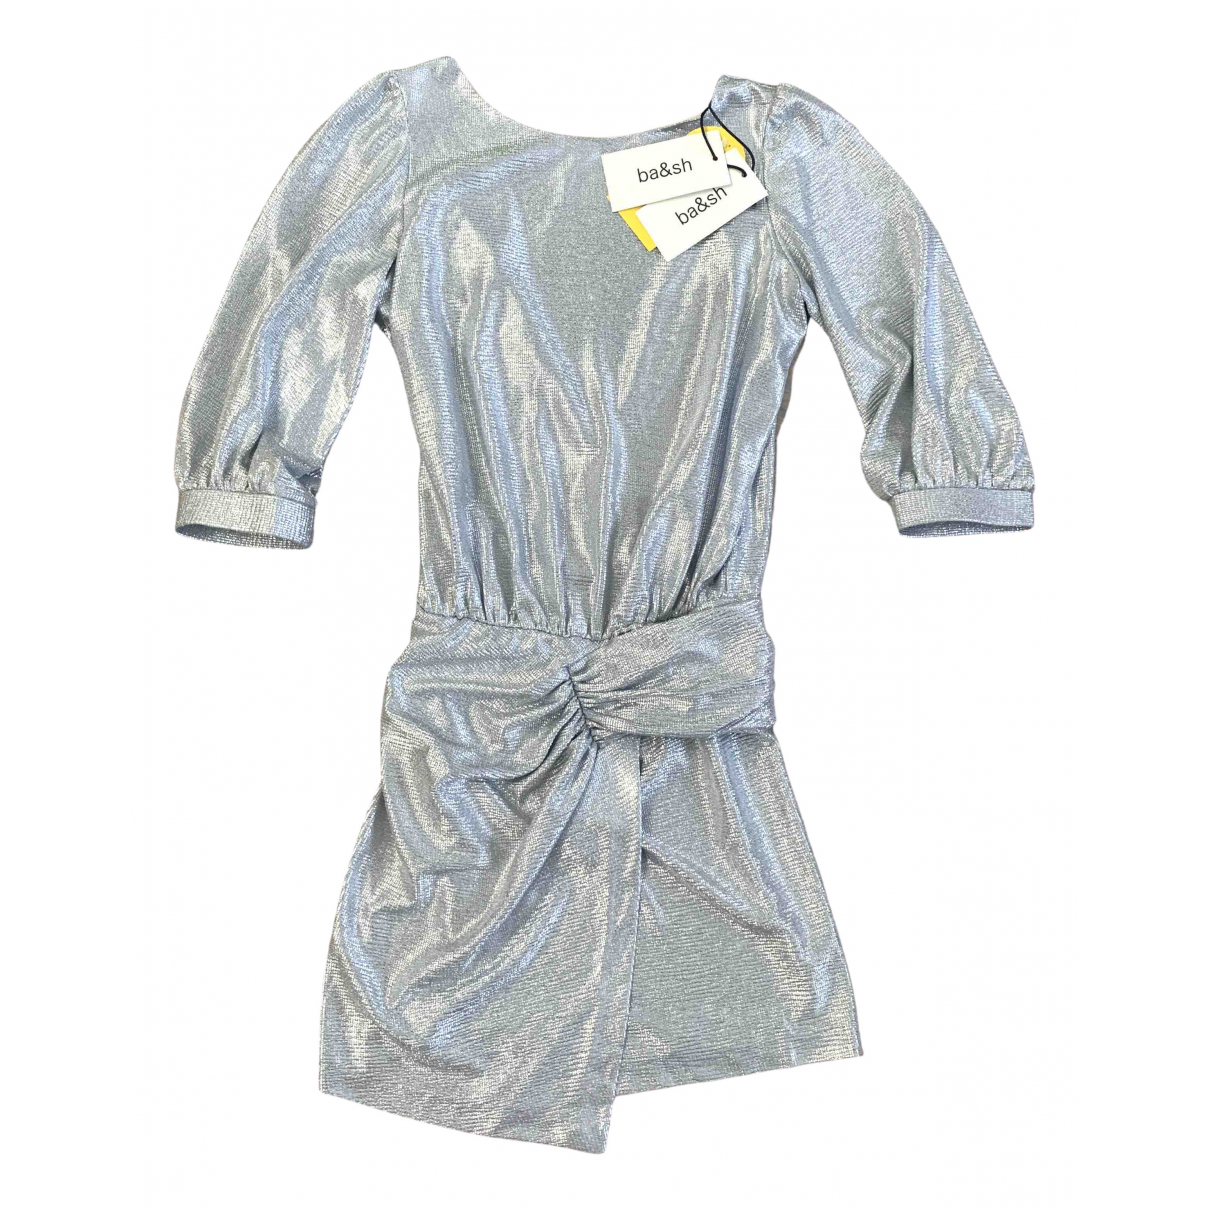 Ba&sh Spring Summer 2020 Silver dress for Women 0 0-5